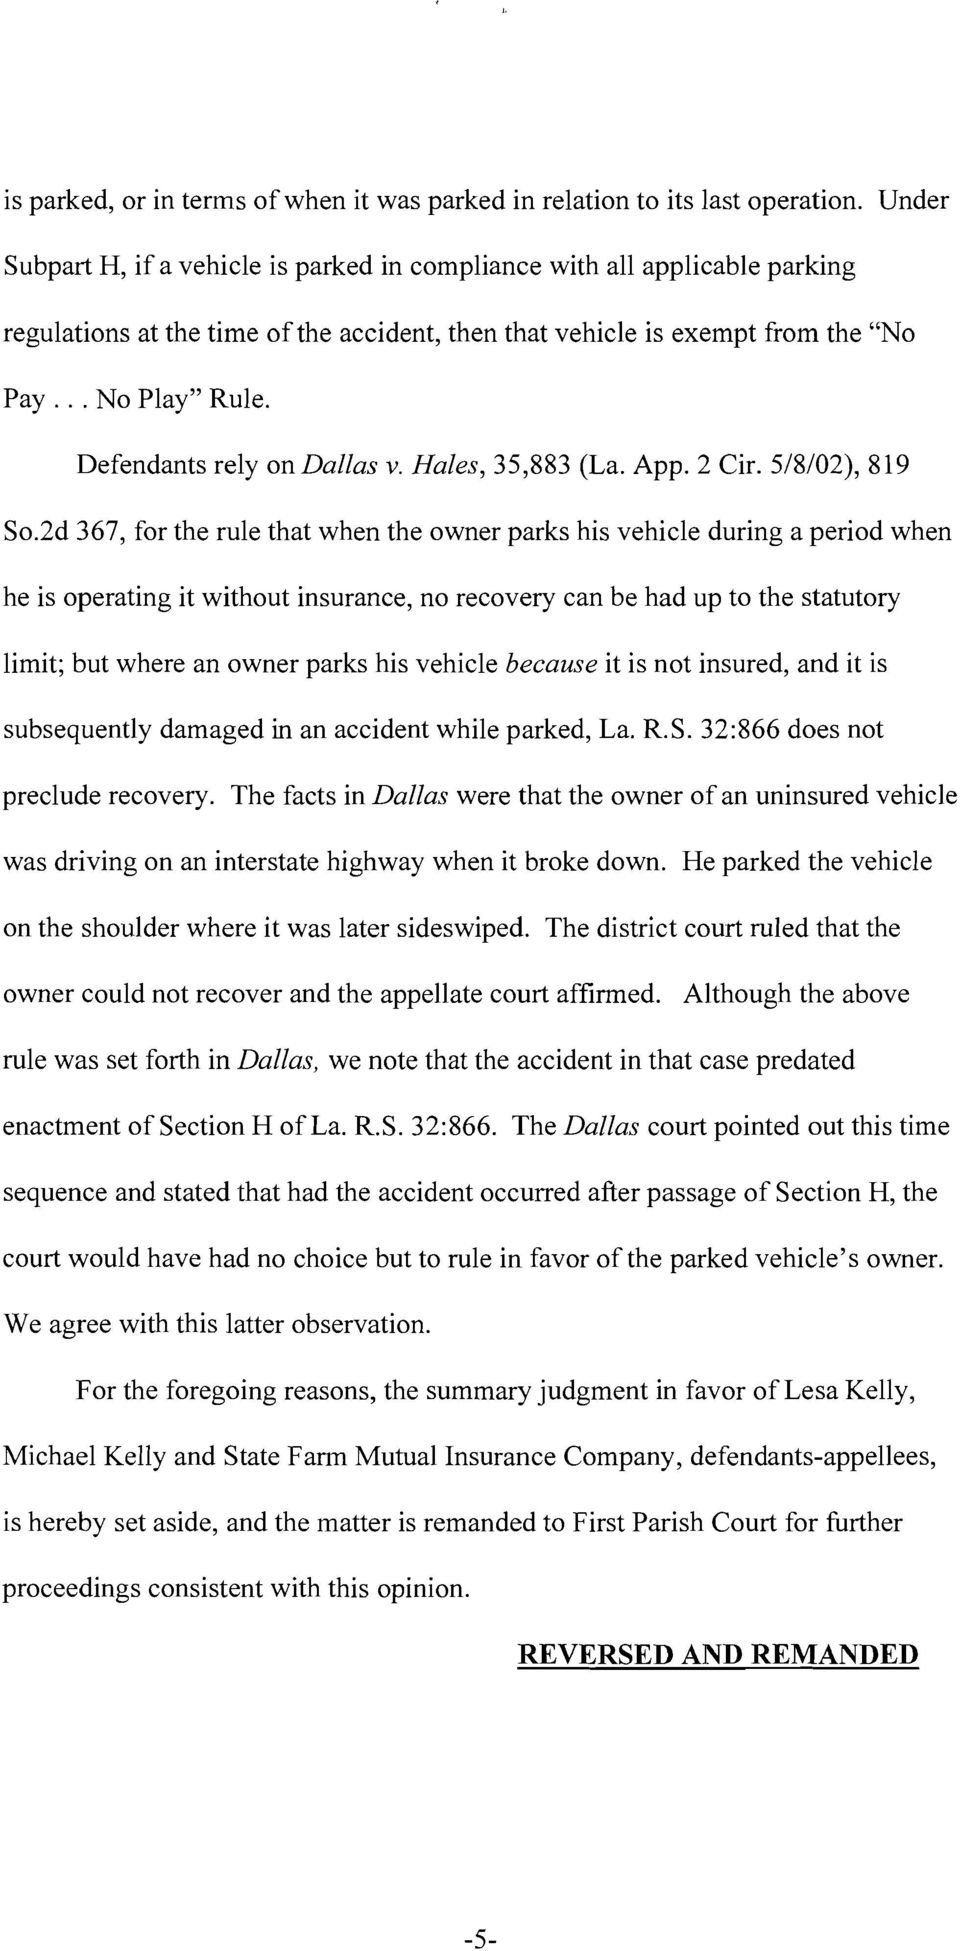 Defendants rely on Dallas v. Hales, 35,883 (La. App. 2 Cir. 5/8/02), 819 So.